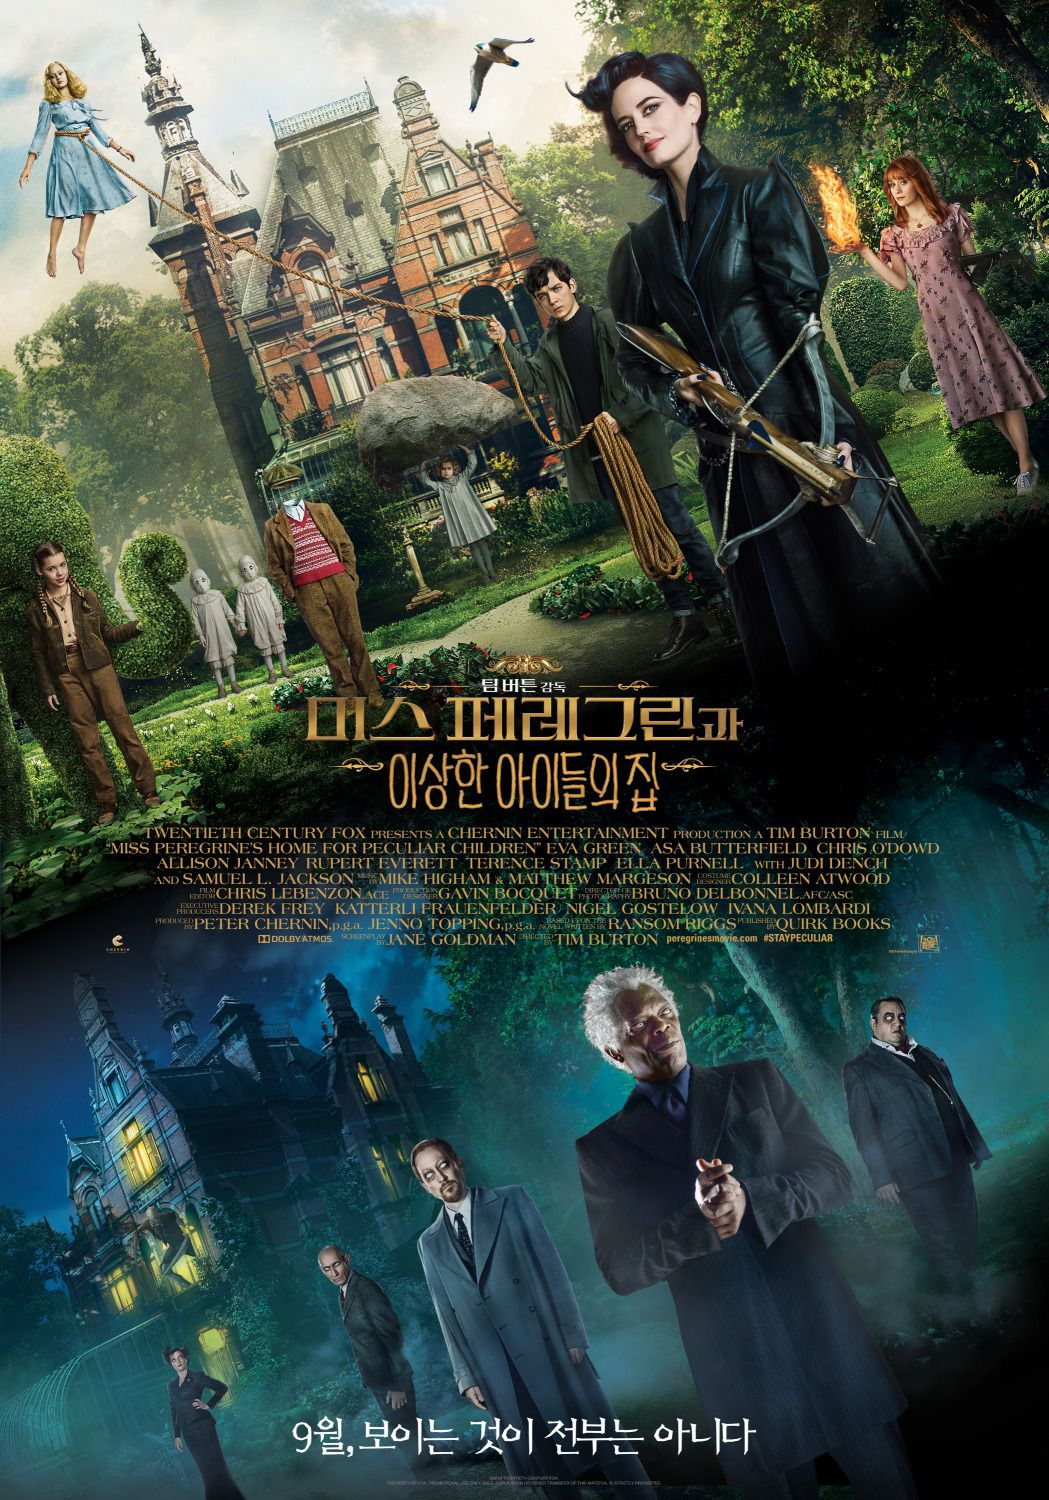 Miss Peregrines home for peculiar children - casa per ragazzi speciali by Tim Burton